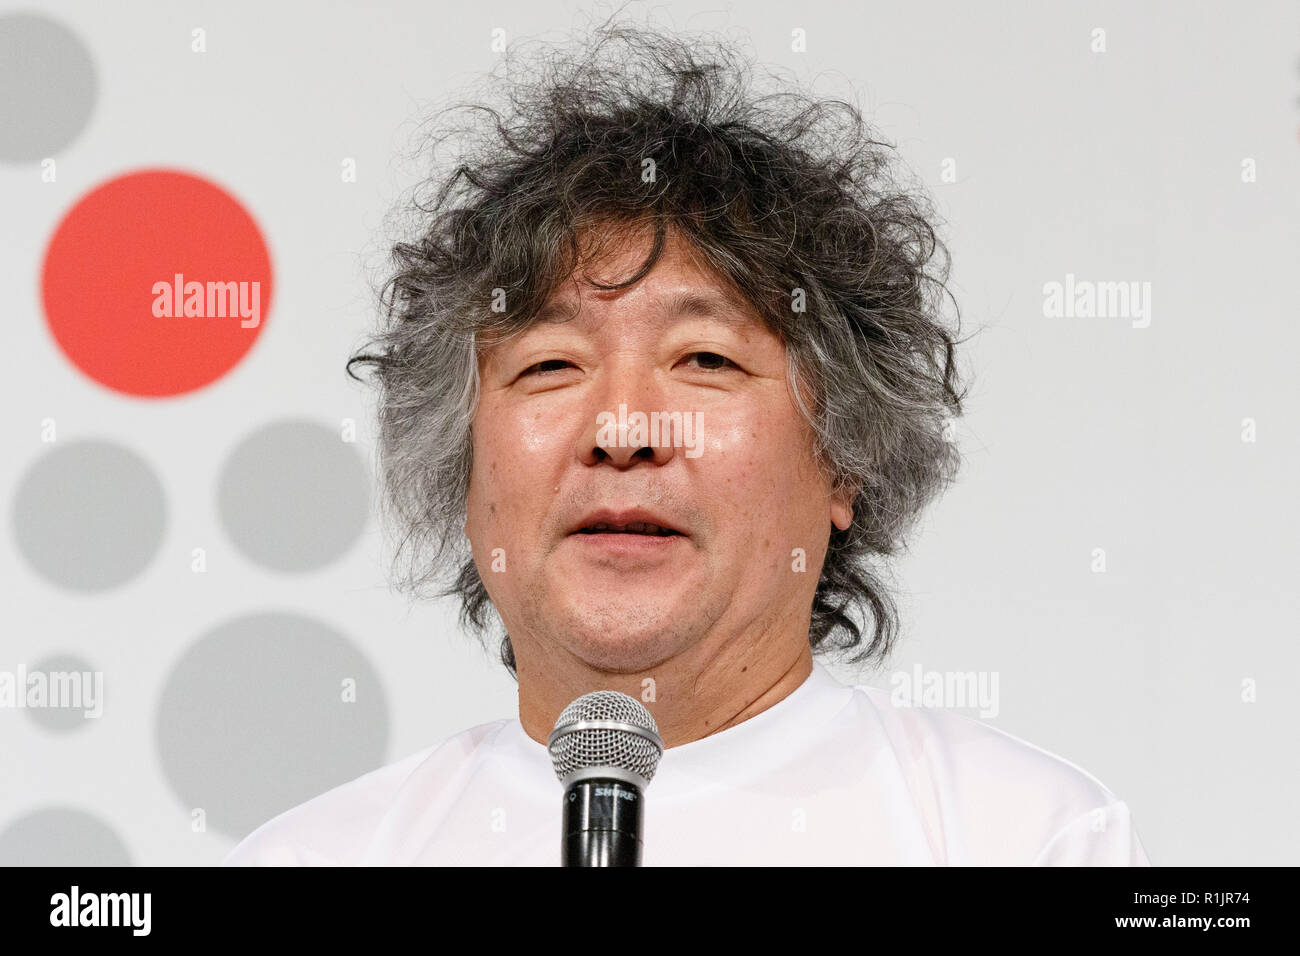 Japanese scientist Ken Mogi speaks during a news conference to announce a new project ''JAAF RunLink'' by the Japan Association of Athletics Federations on November 13, 2018, Tokyo, Japan. (Photo by Rodrigo Reyes Marin/AFLO) - Stock Image